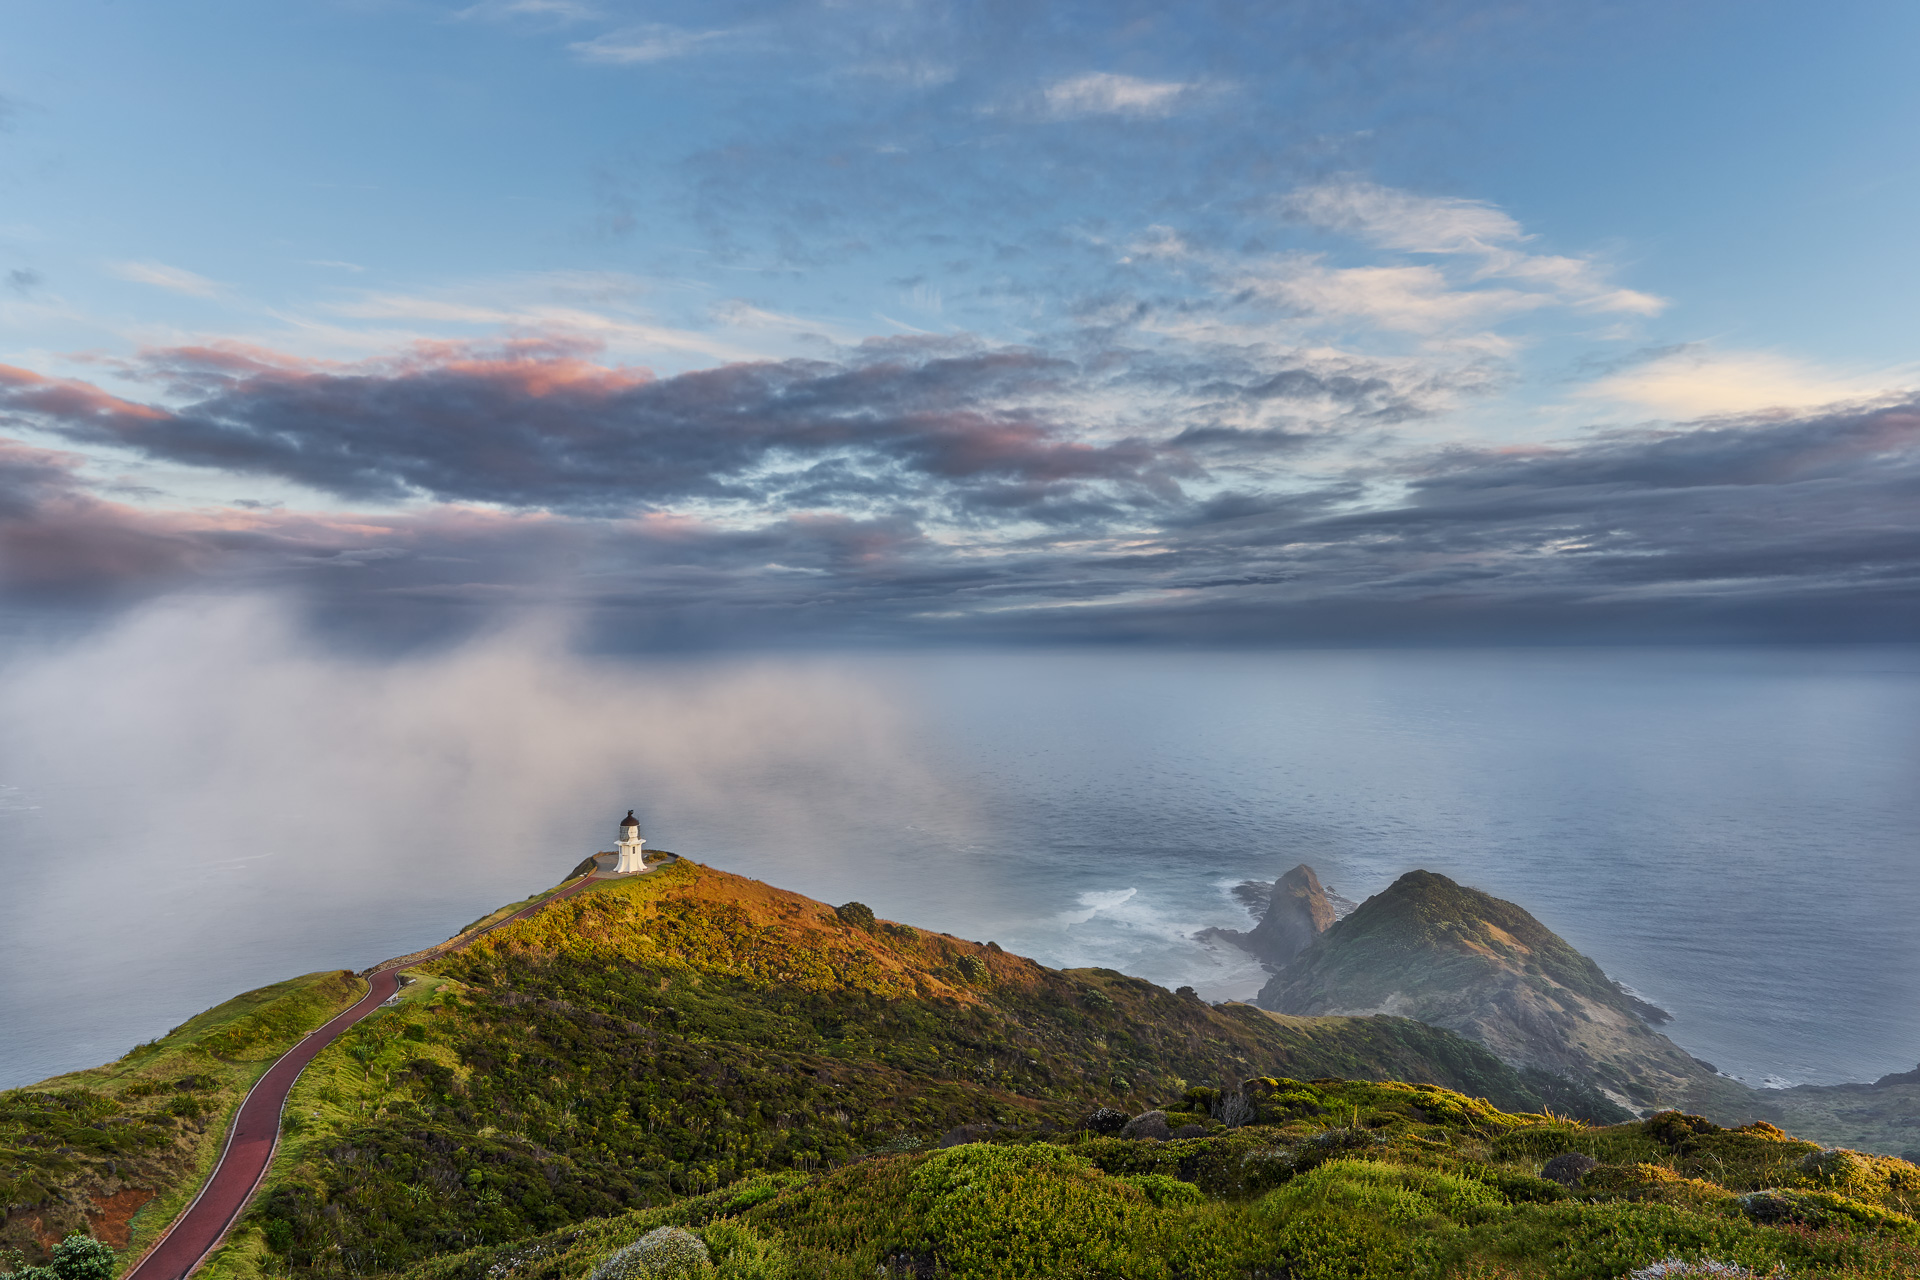 Cape Reinga is where Souls depart